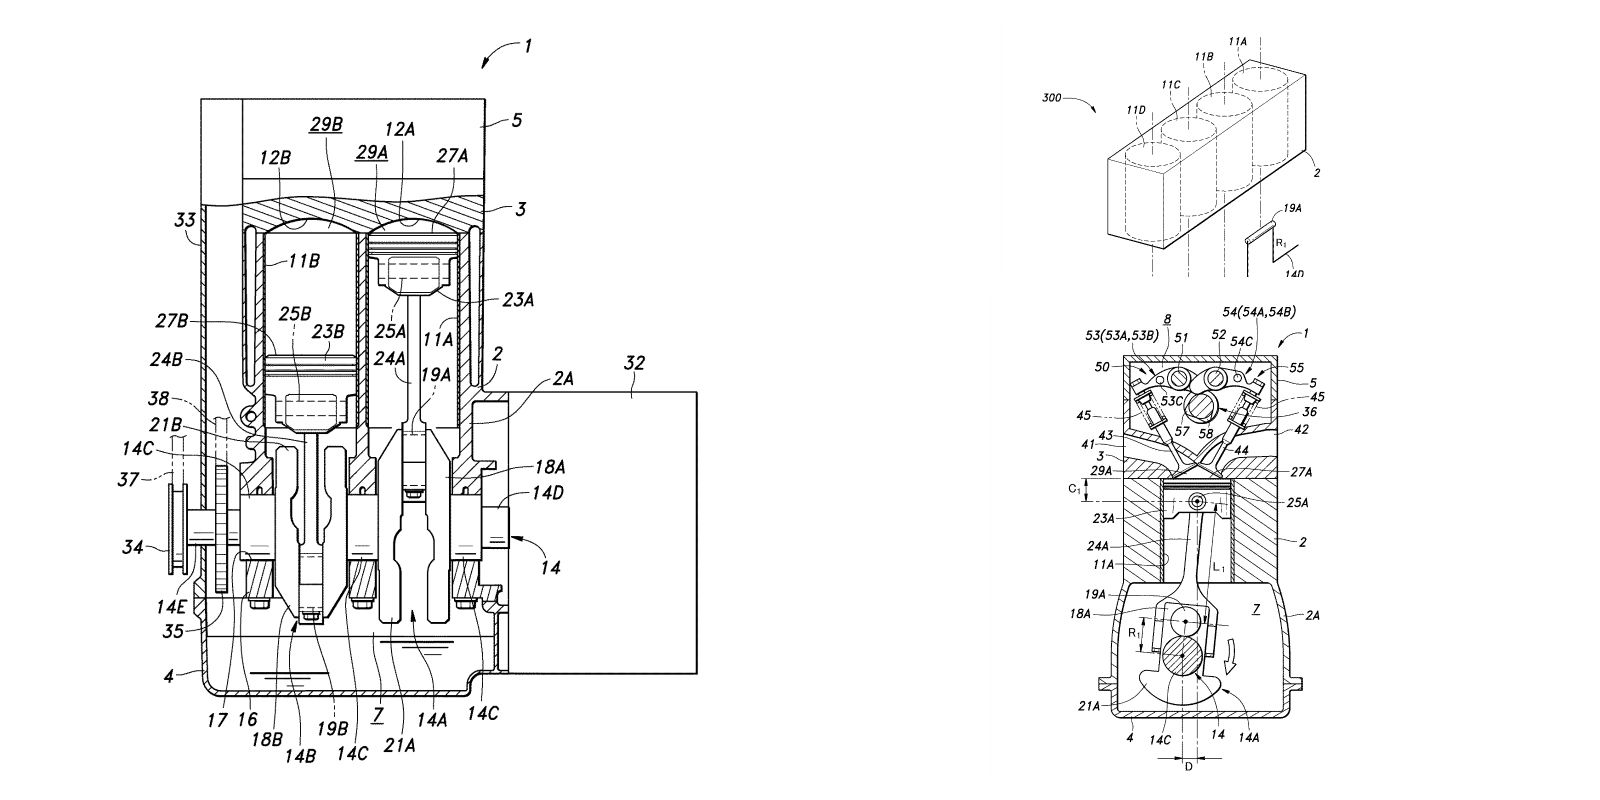 Honda Patents Engine With Two Different Stroke Lengths Schematic Diagram